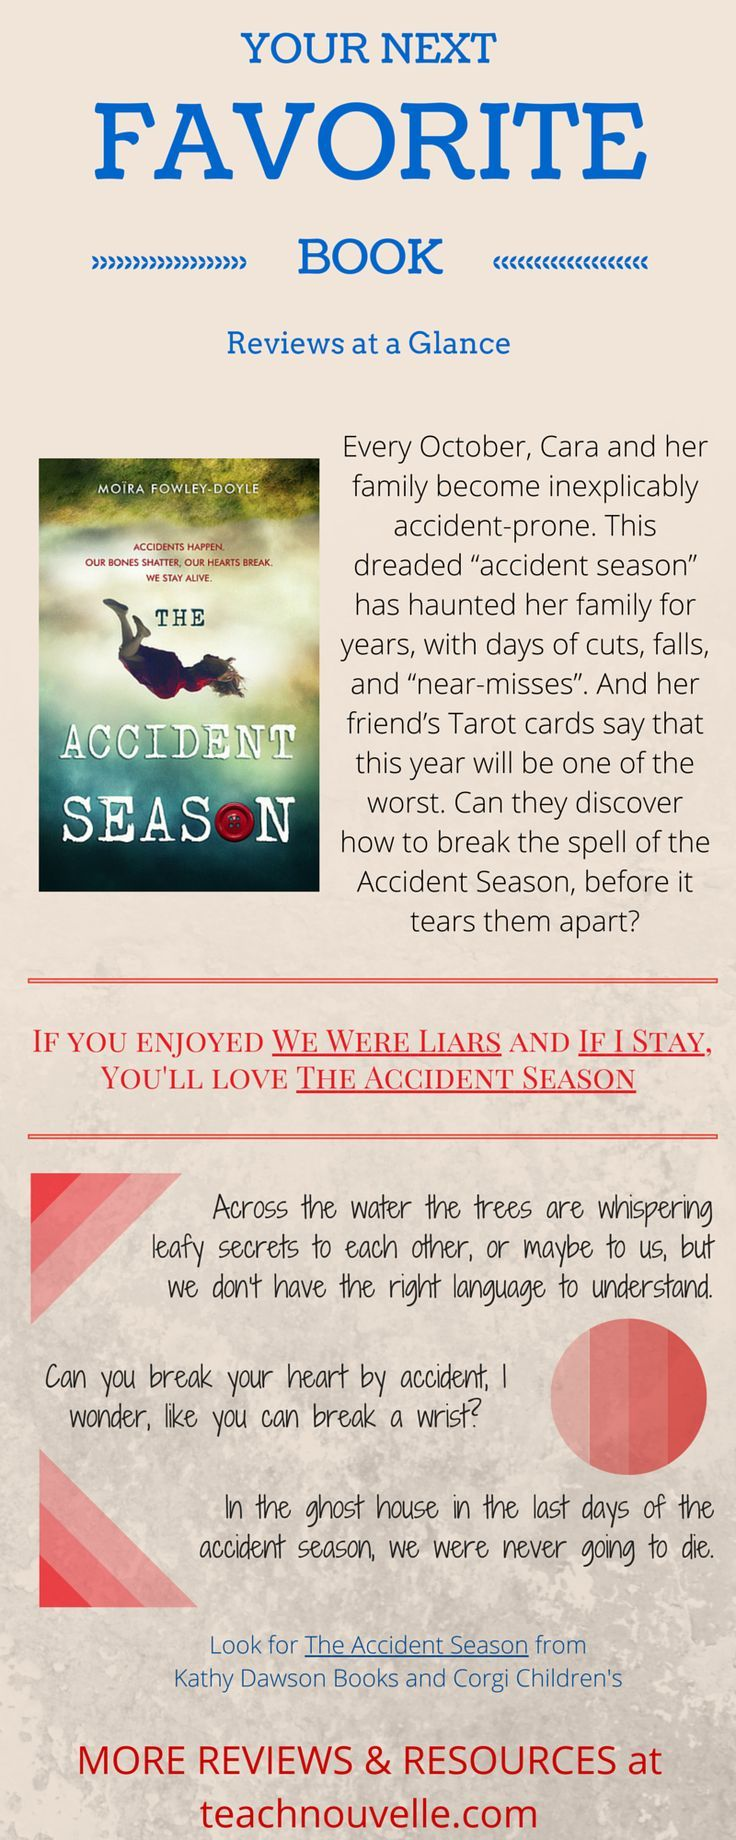 Looking for a new favorite book? Here's a Review at a Glance of Moïra Fowley-Doyle's The Accident Season. YA lit. More reviews and resources available at http://teachnouvelle.com